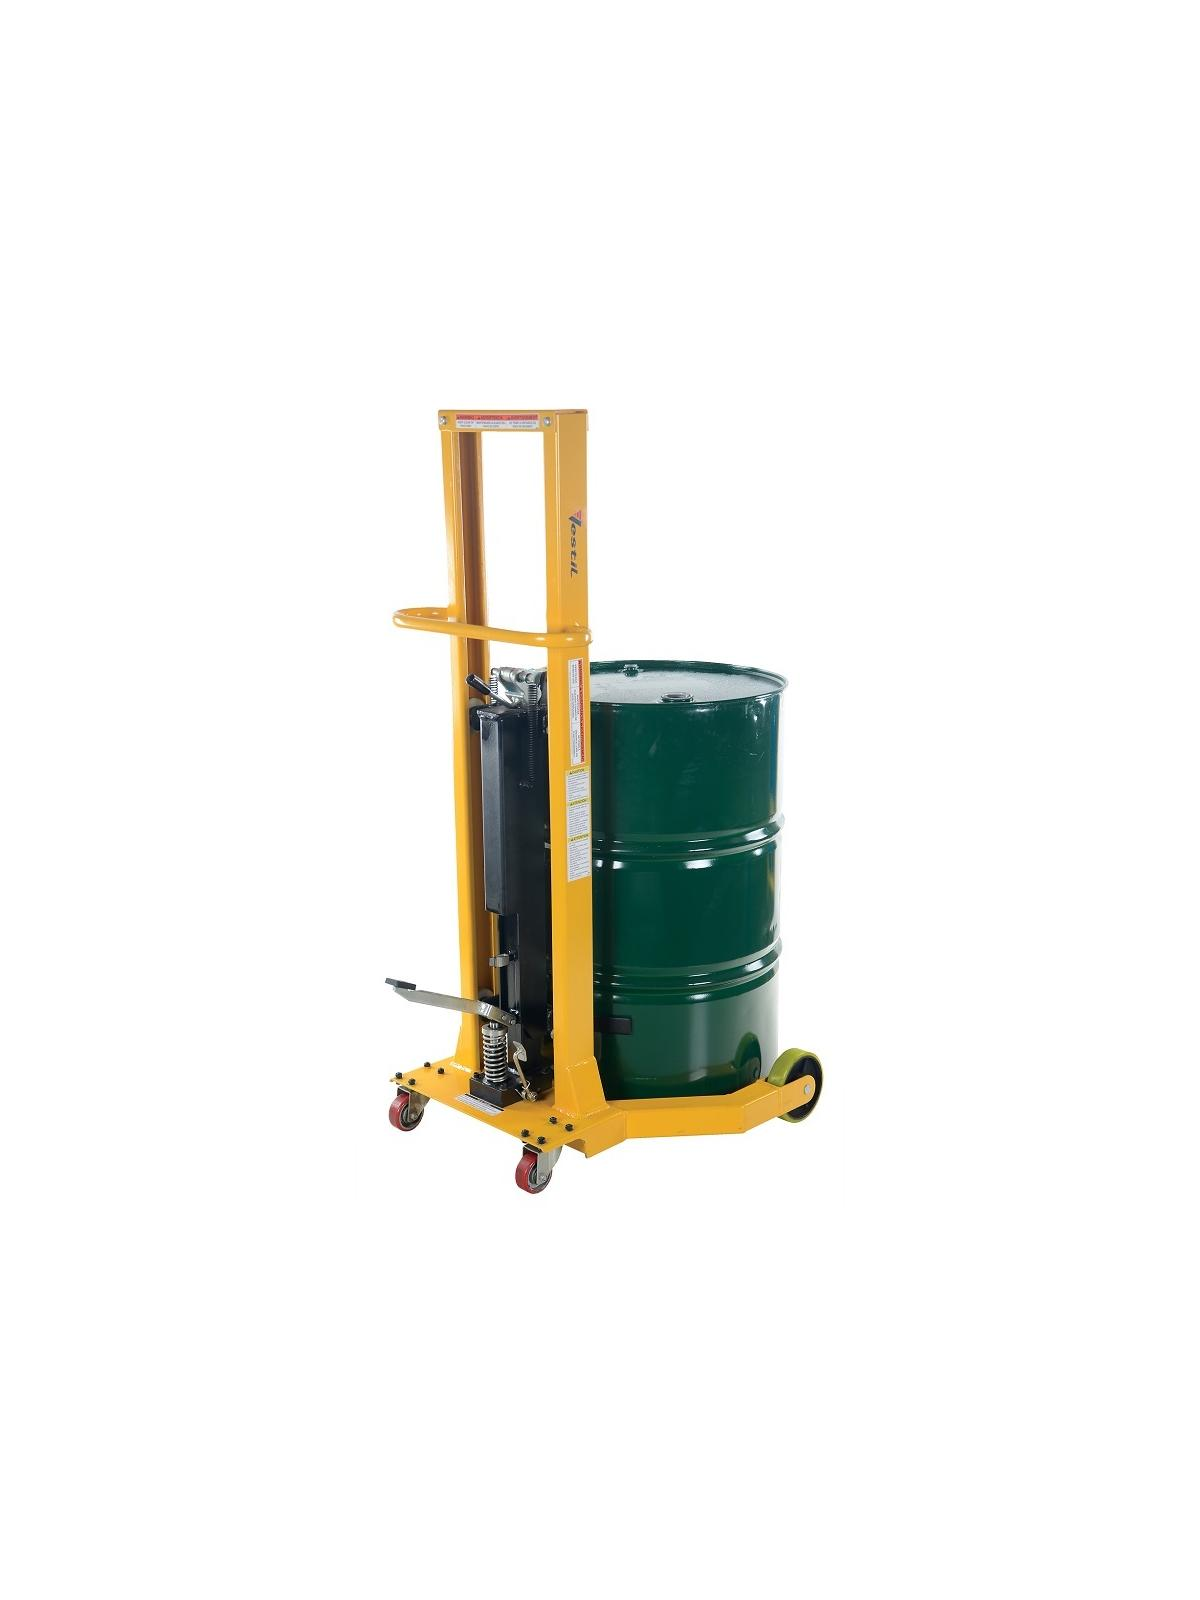 Portable Drum Jack At Nationwide Industrial Supply Llc